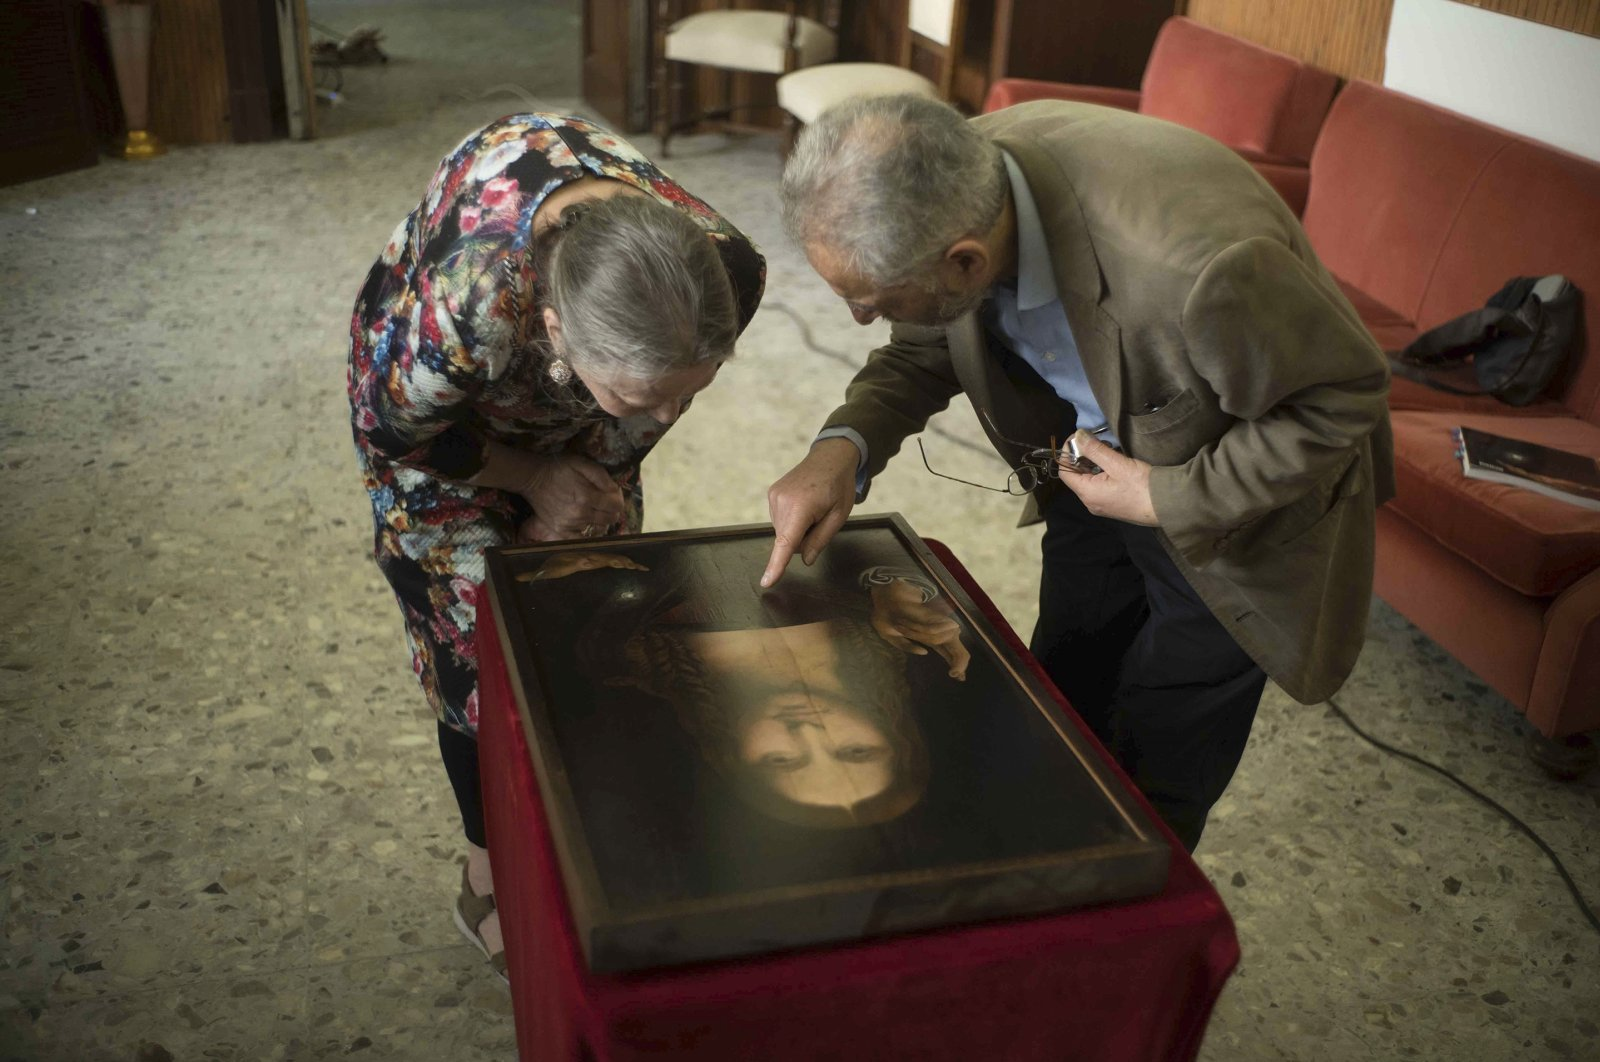 """Dianne Modestini (L), and Ashok Roy inspectthe Naples copy of the Salvator Mundi in a scene from the documentary """"The Lost Leonardo."""" (Sony Pictures Classics via AP)"""